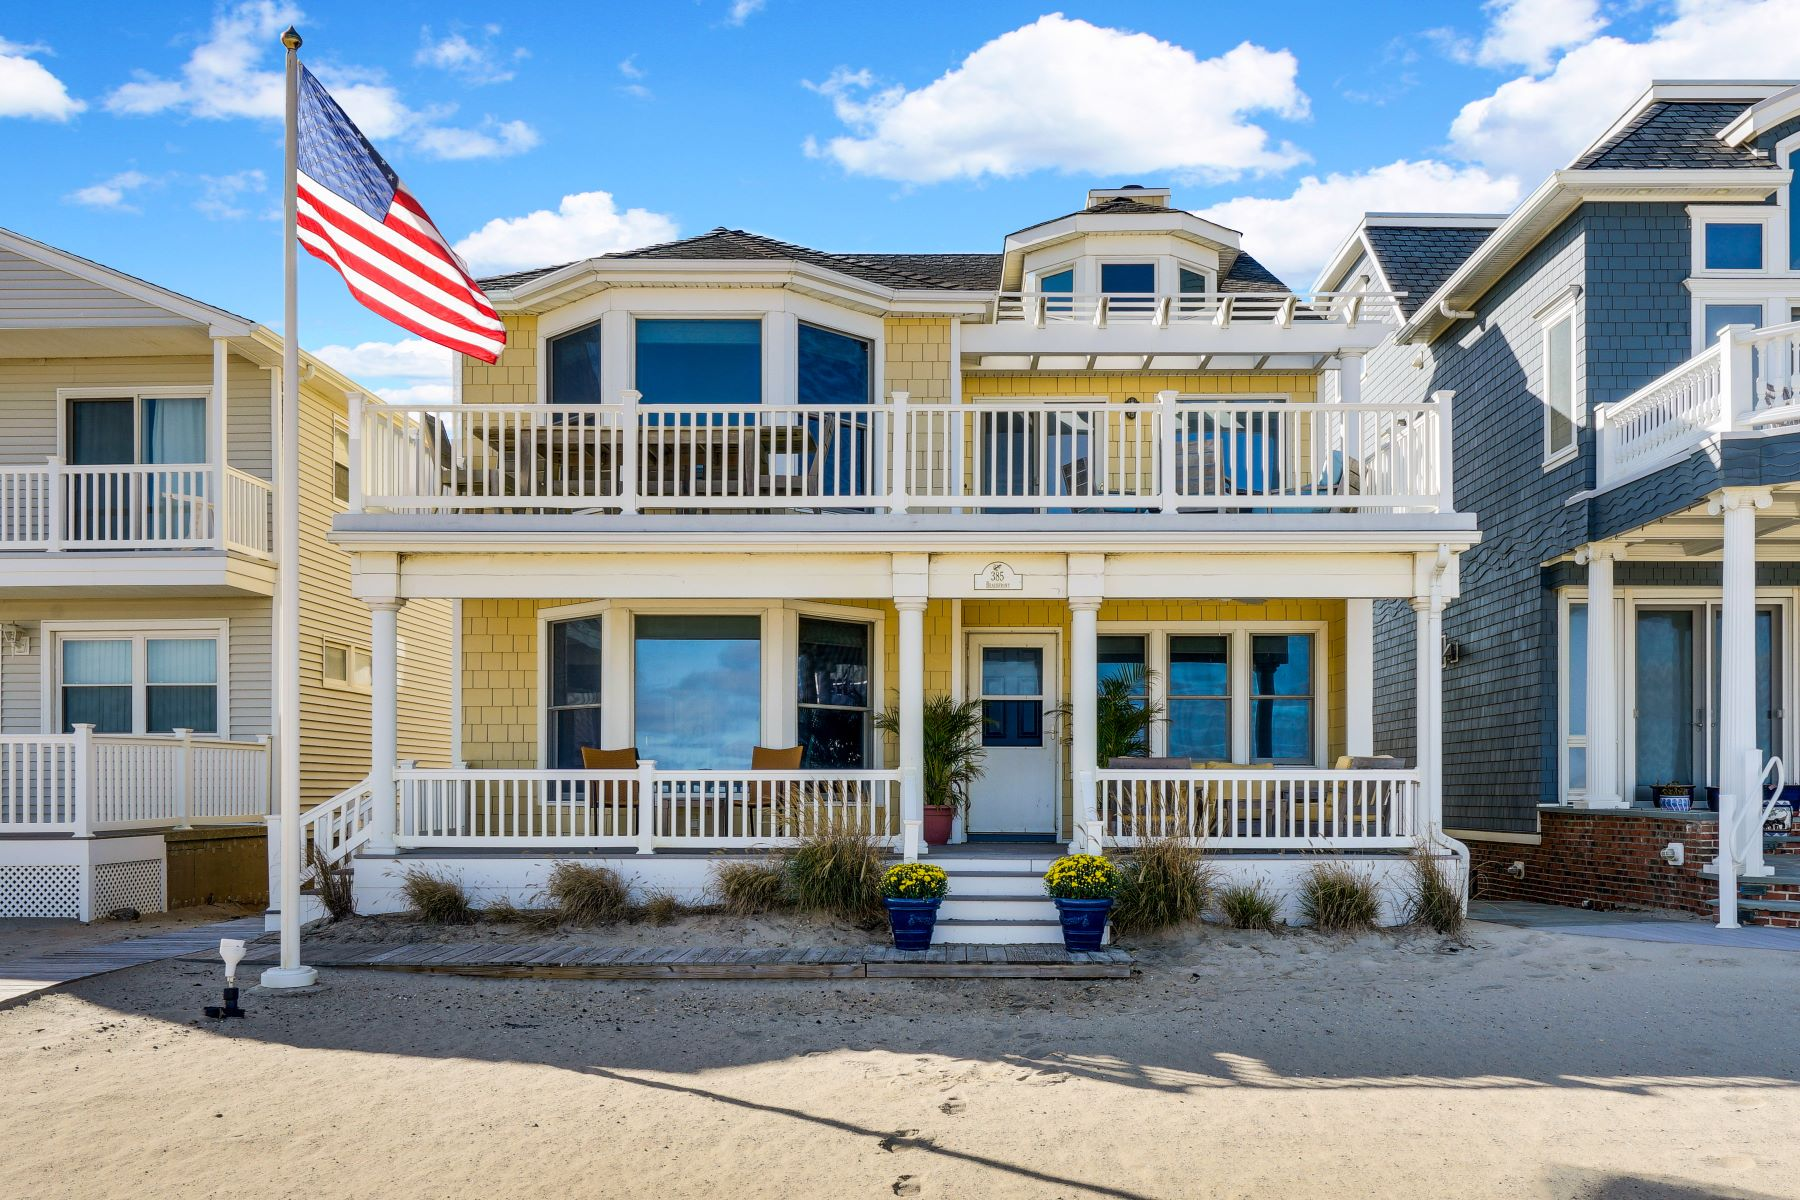 Single Family Home for Sale at Enjoy the Magic of Beachfront Living 385 Beachfront, Manasquan, New Jersey 08736 United States